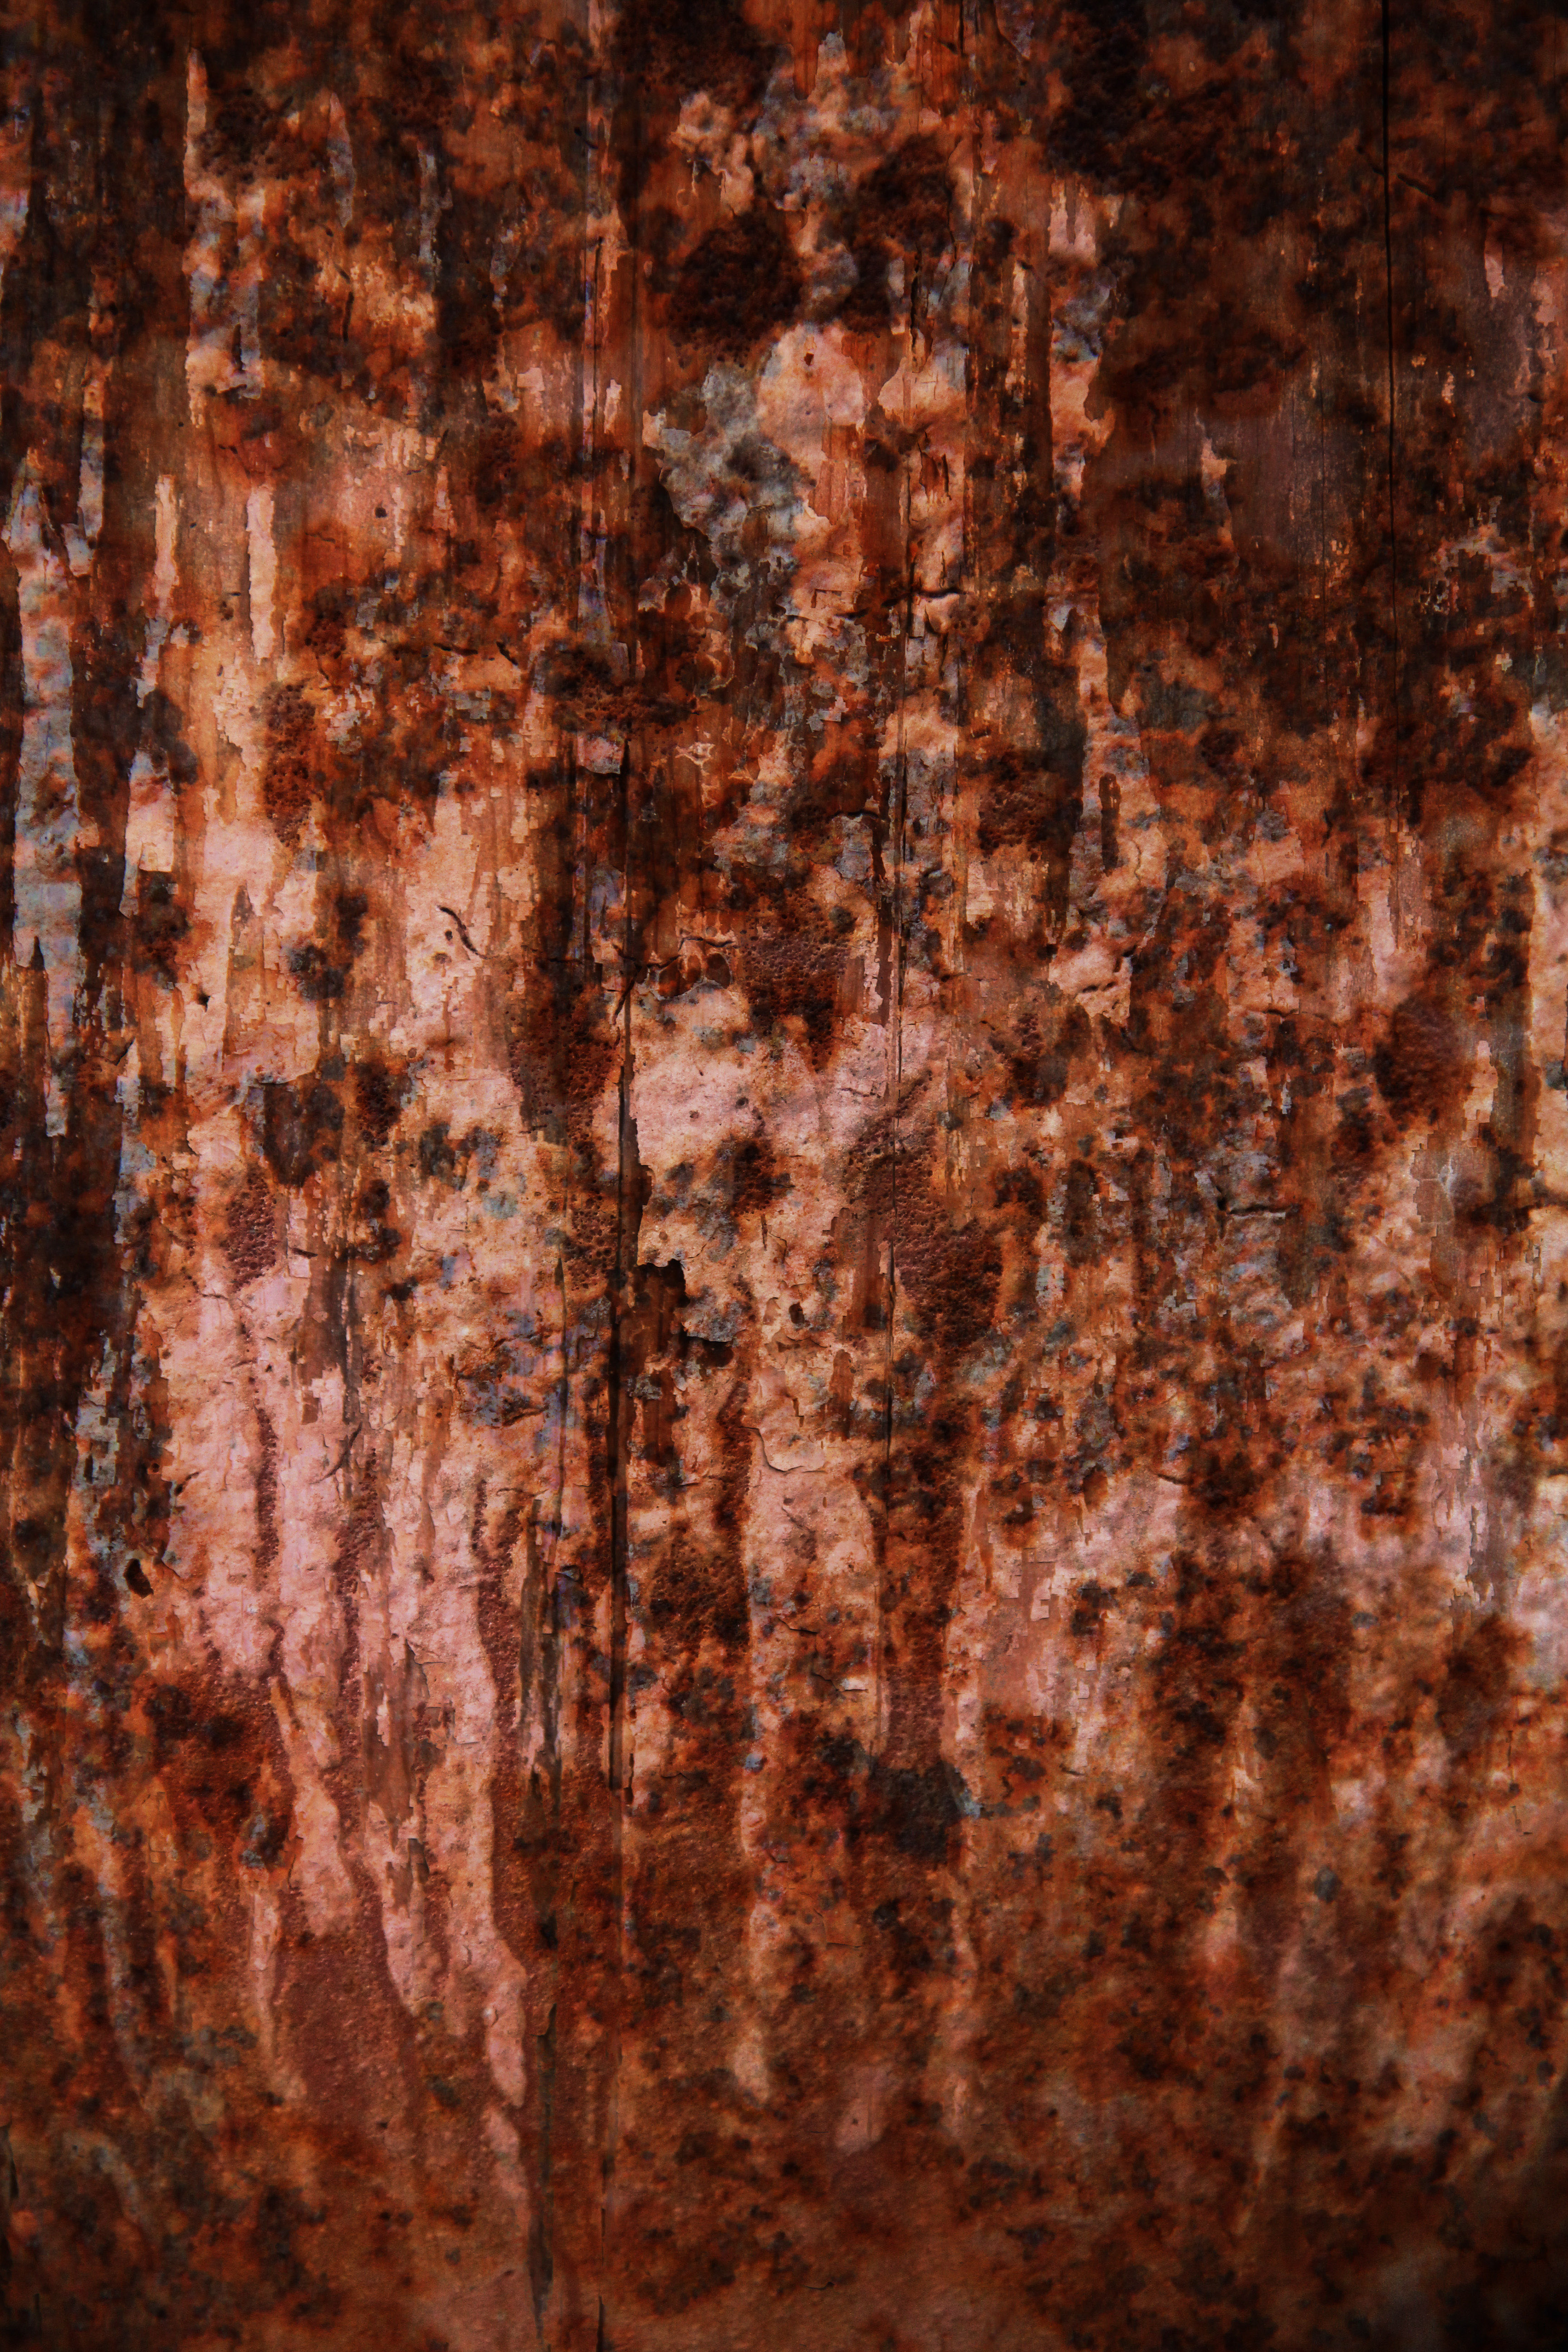 Grunge Texture Horror Ugle Rough Surface Background Red